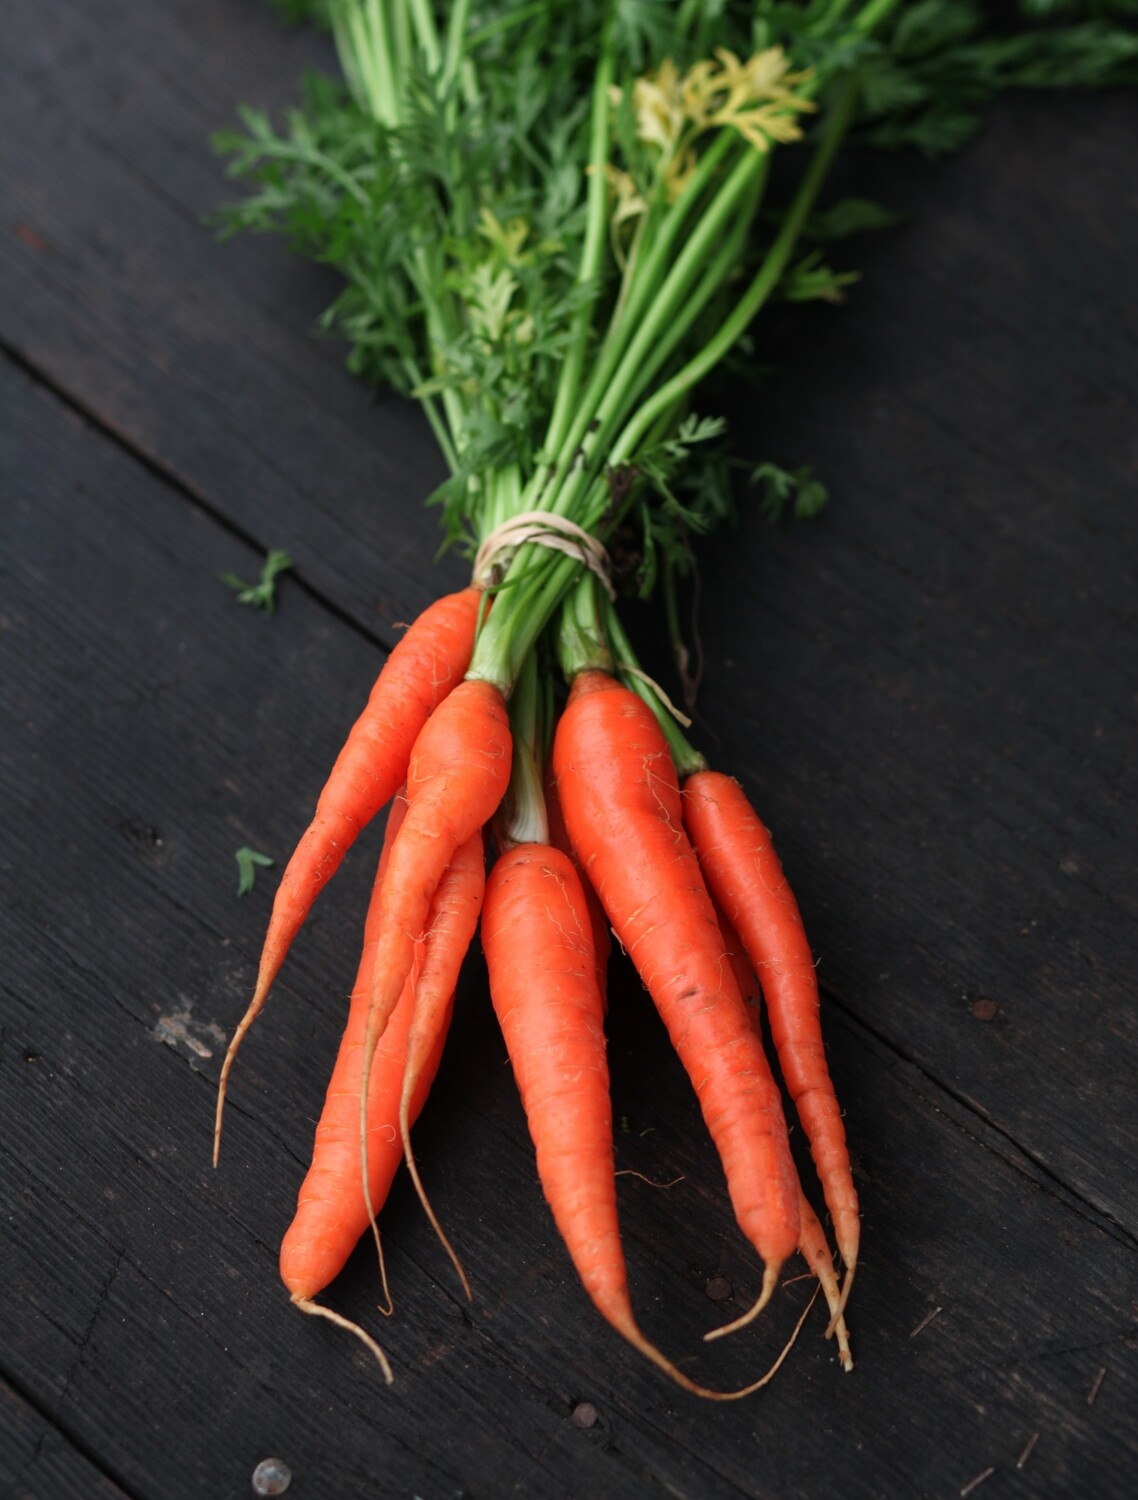 Carrots - Groundswell Farm (1 bunch)